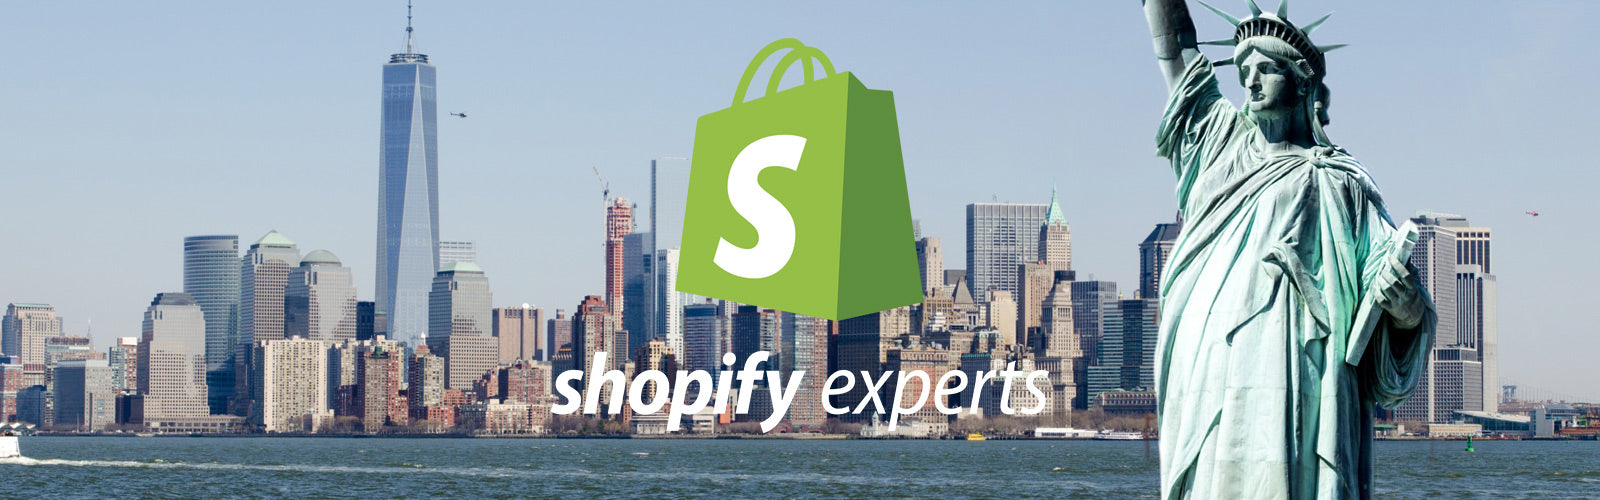 Realm - Shopify Experts New York City Shopify Expert Los Angeles, Shopify Expert San Francisco